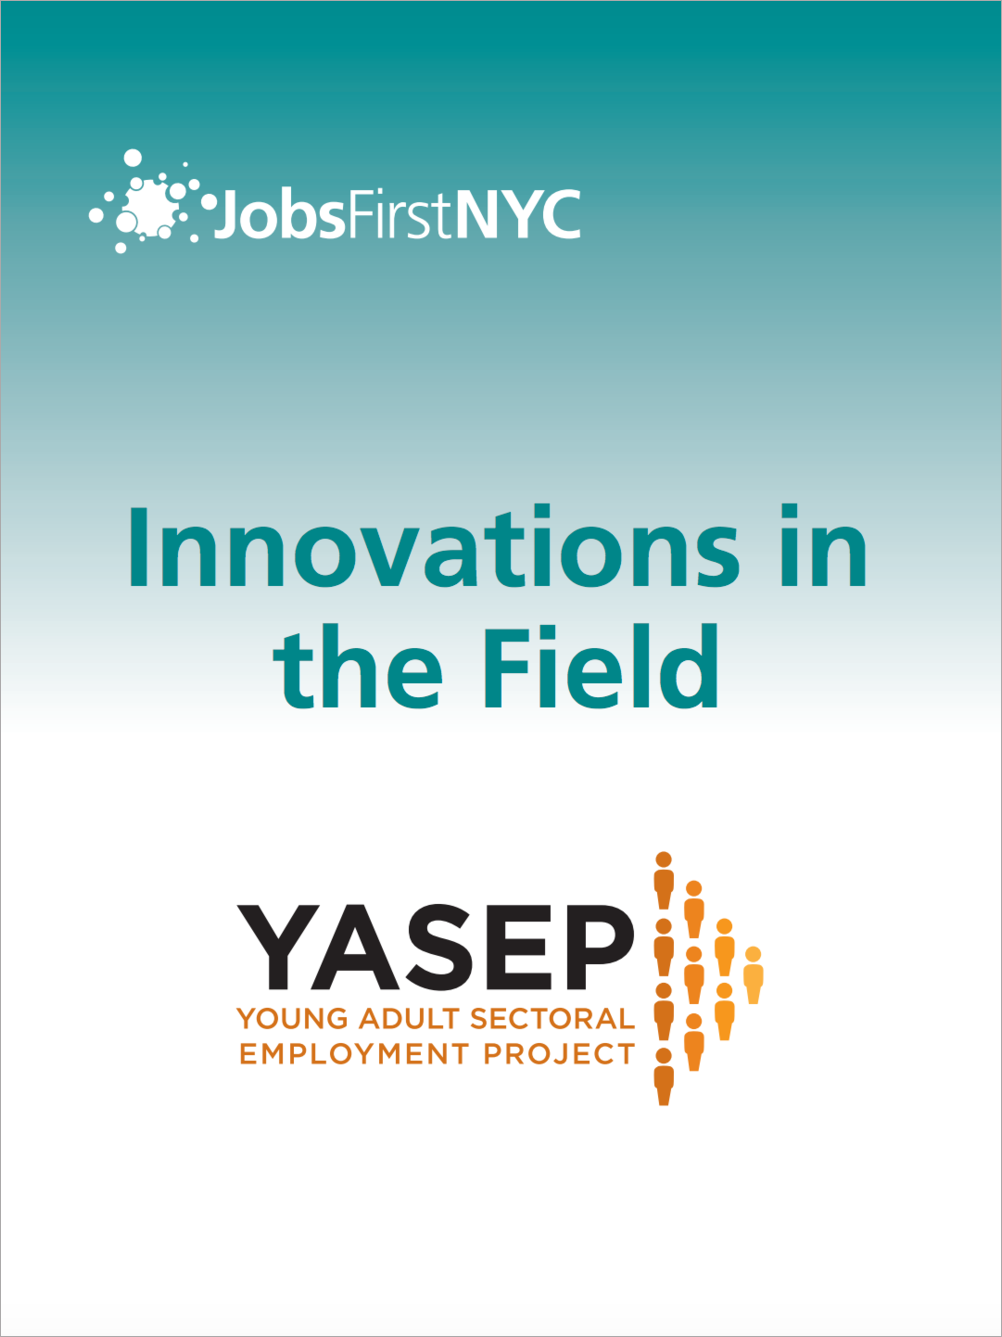 A 2014 report by JobsFirstNYC, part of the  Innovations in the Field  series, detailing the initial round of YASEP partnerships. Learn more  here .